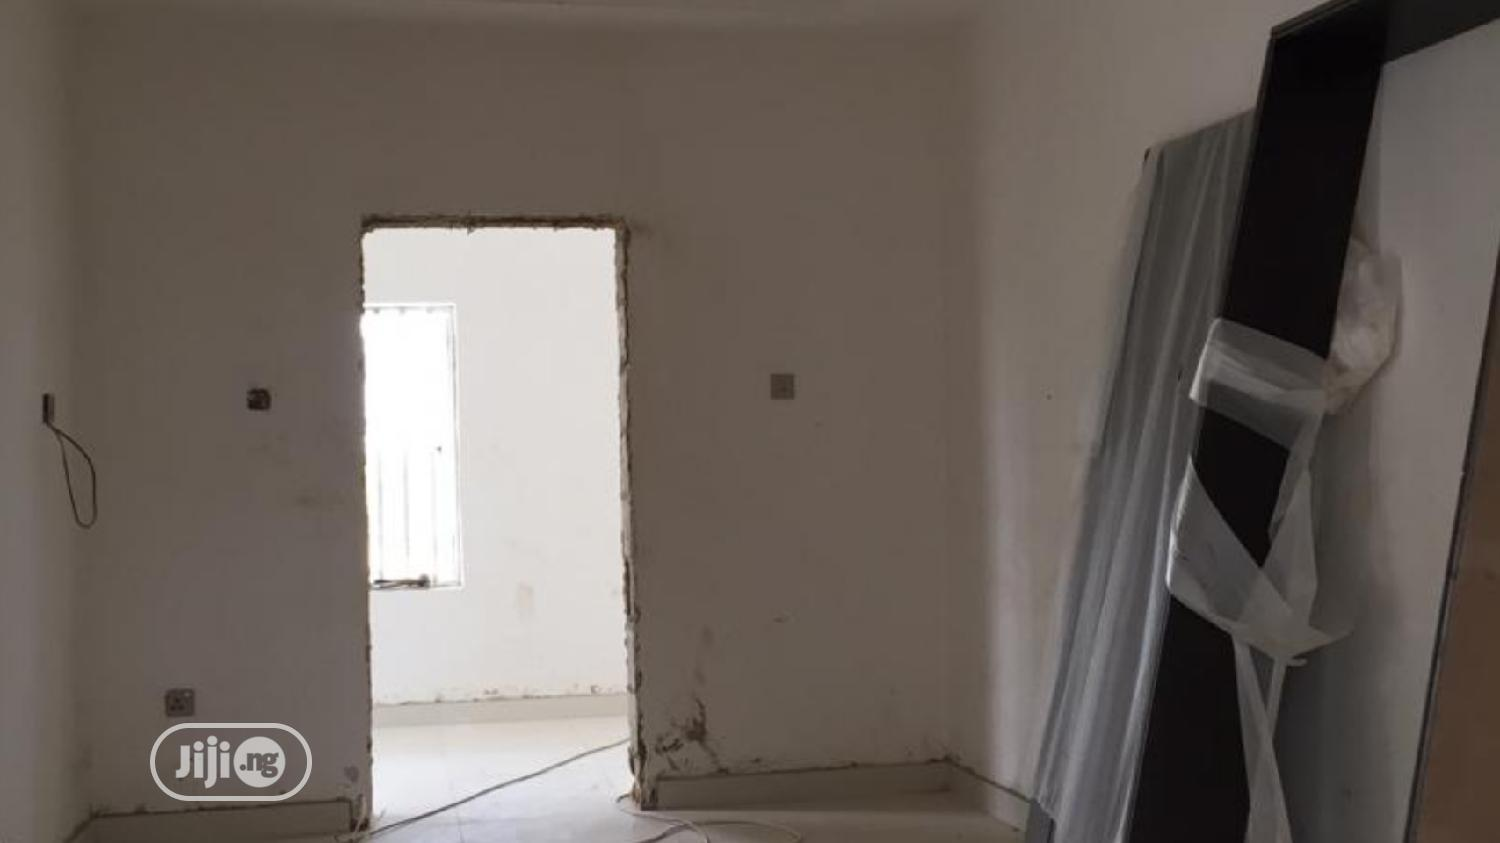 4 Bedrooms Duplex With Cofo At Oluyole Estate Ibadan   Houses & Apartments For Sale for sale in Oluyole Estate, Ibadan, Nigeria